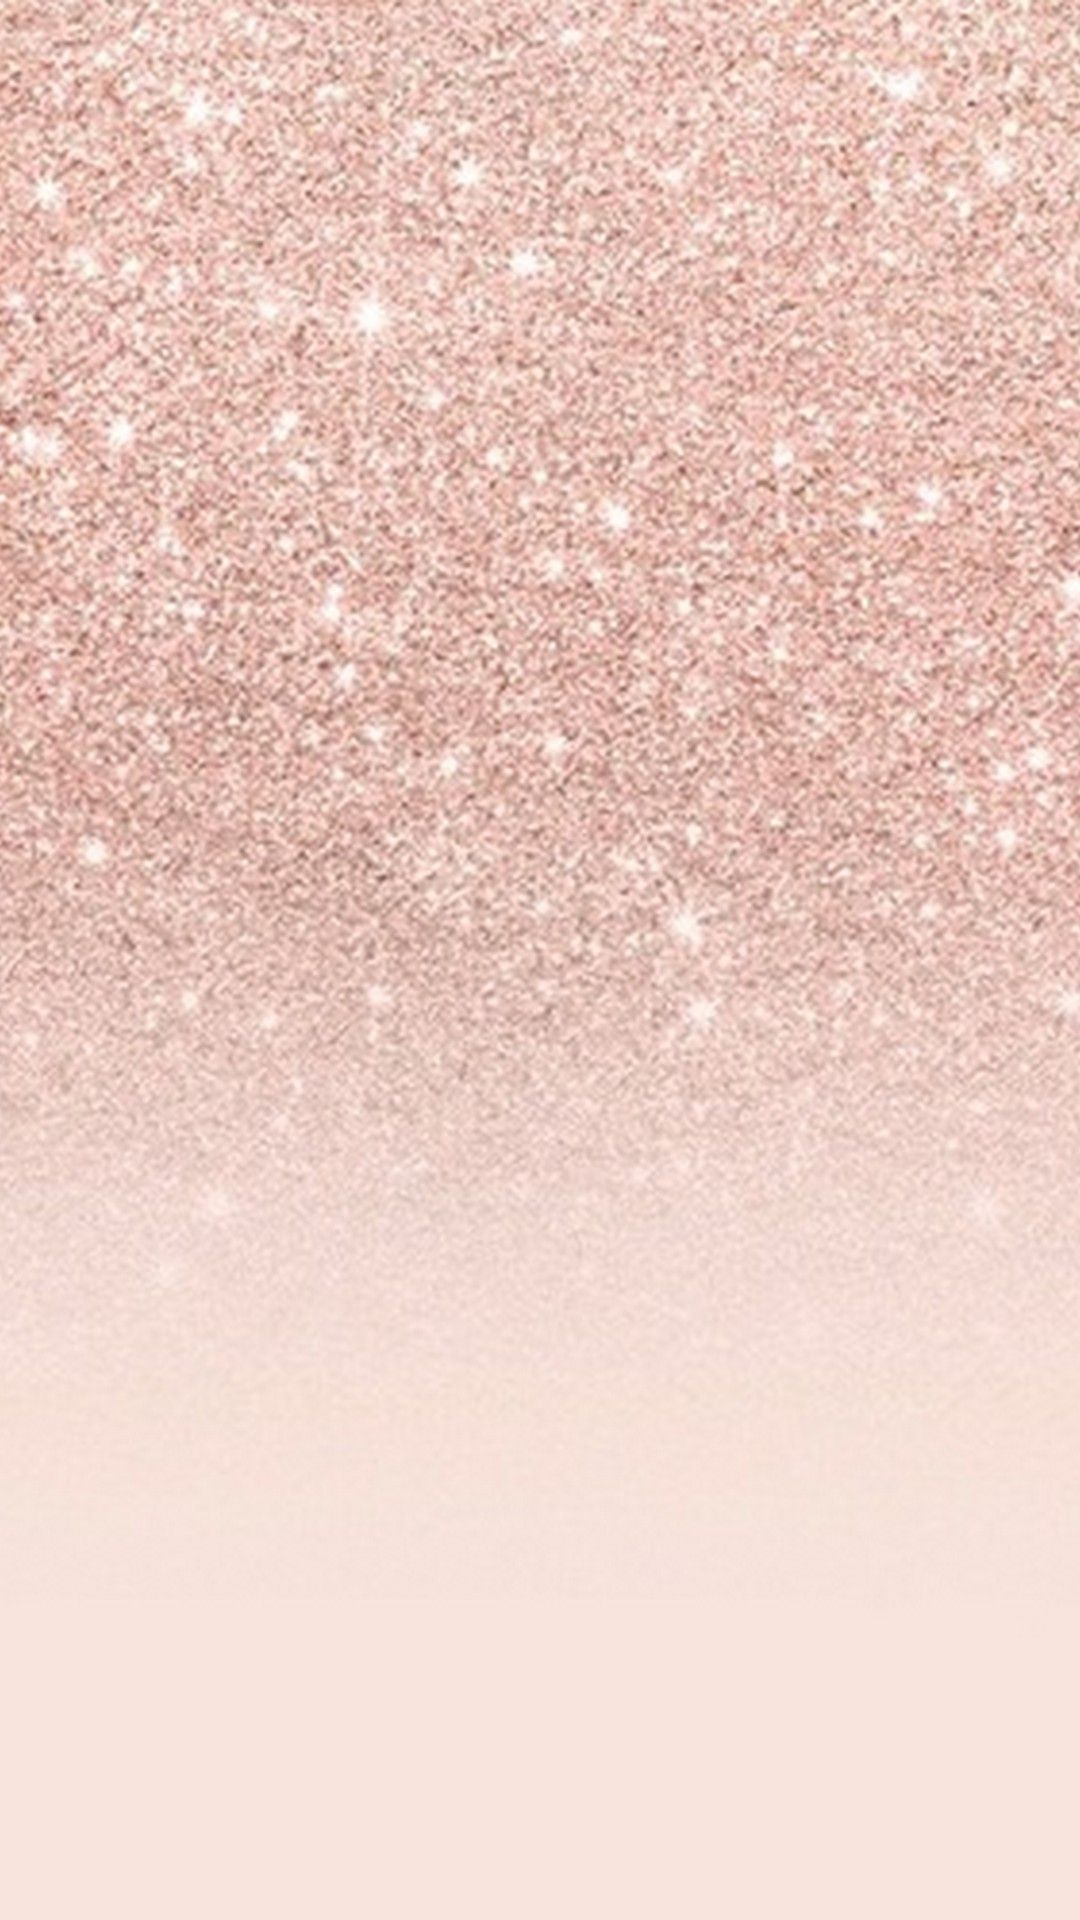 Wallpaper Rose Gold Glitter Android is high definition android wallpaper. You can make this wallpaper for your Android backgrounds, Tablet, ...